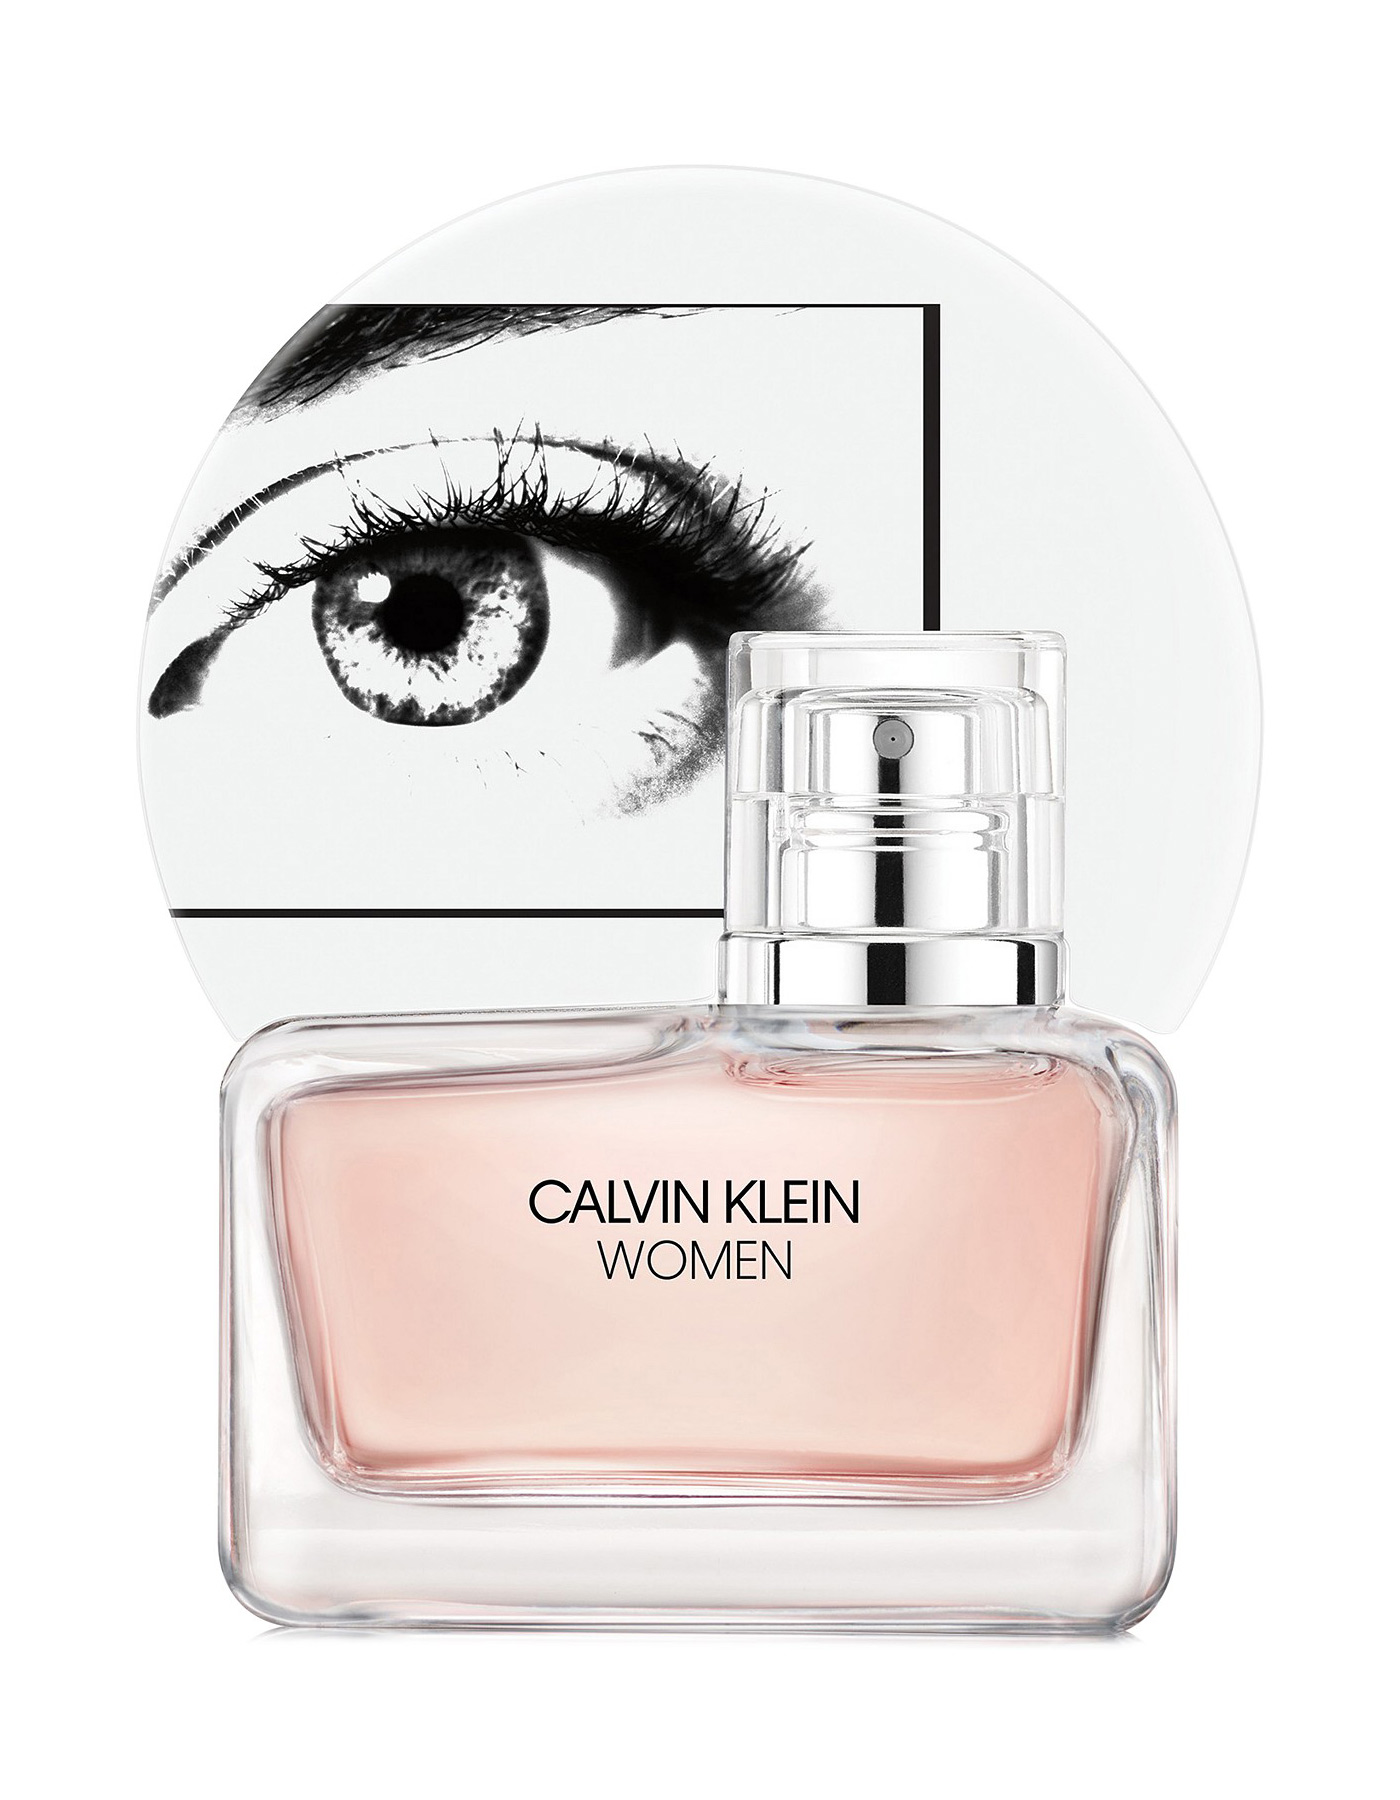 A new fregrence by calvin klein